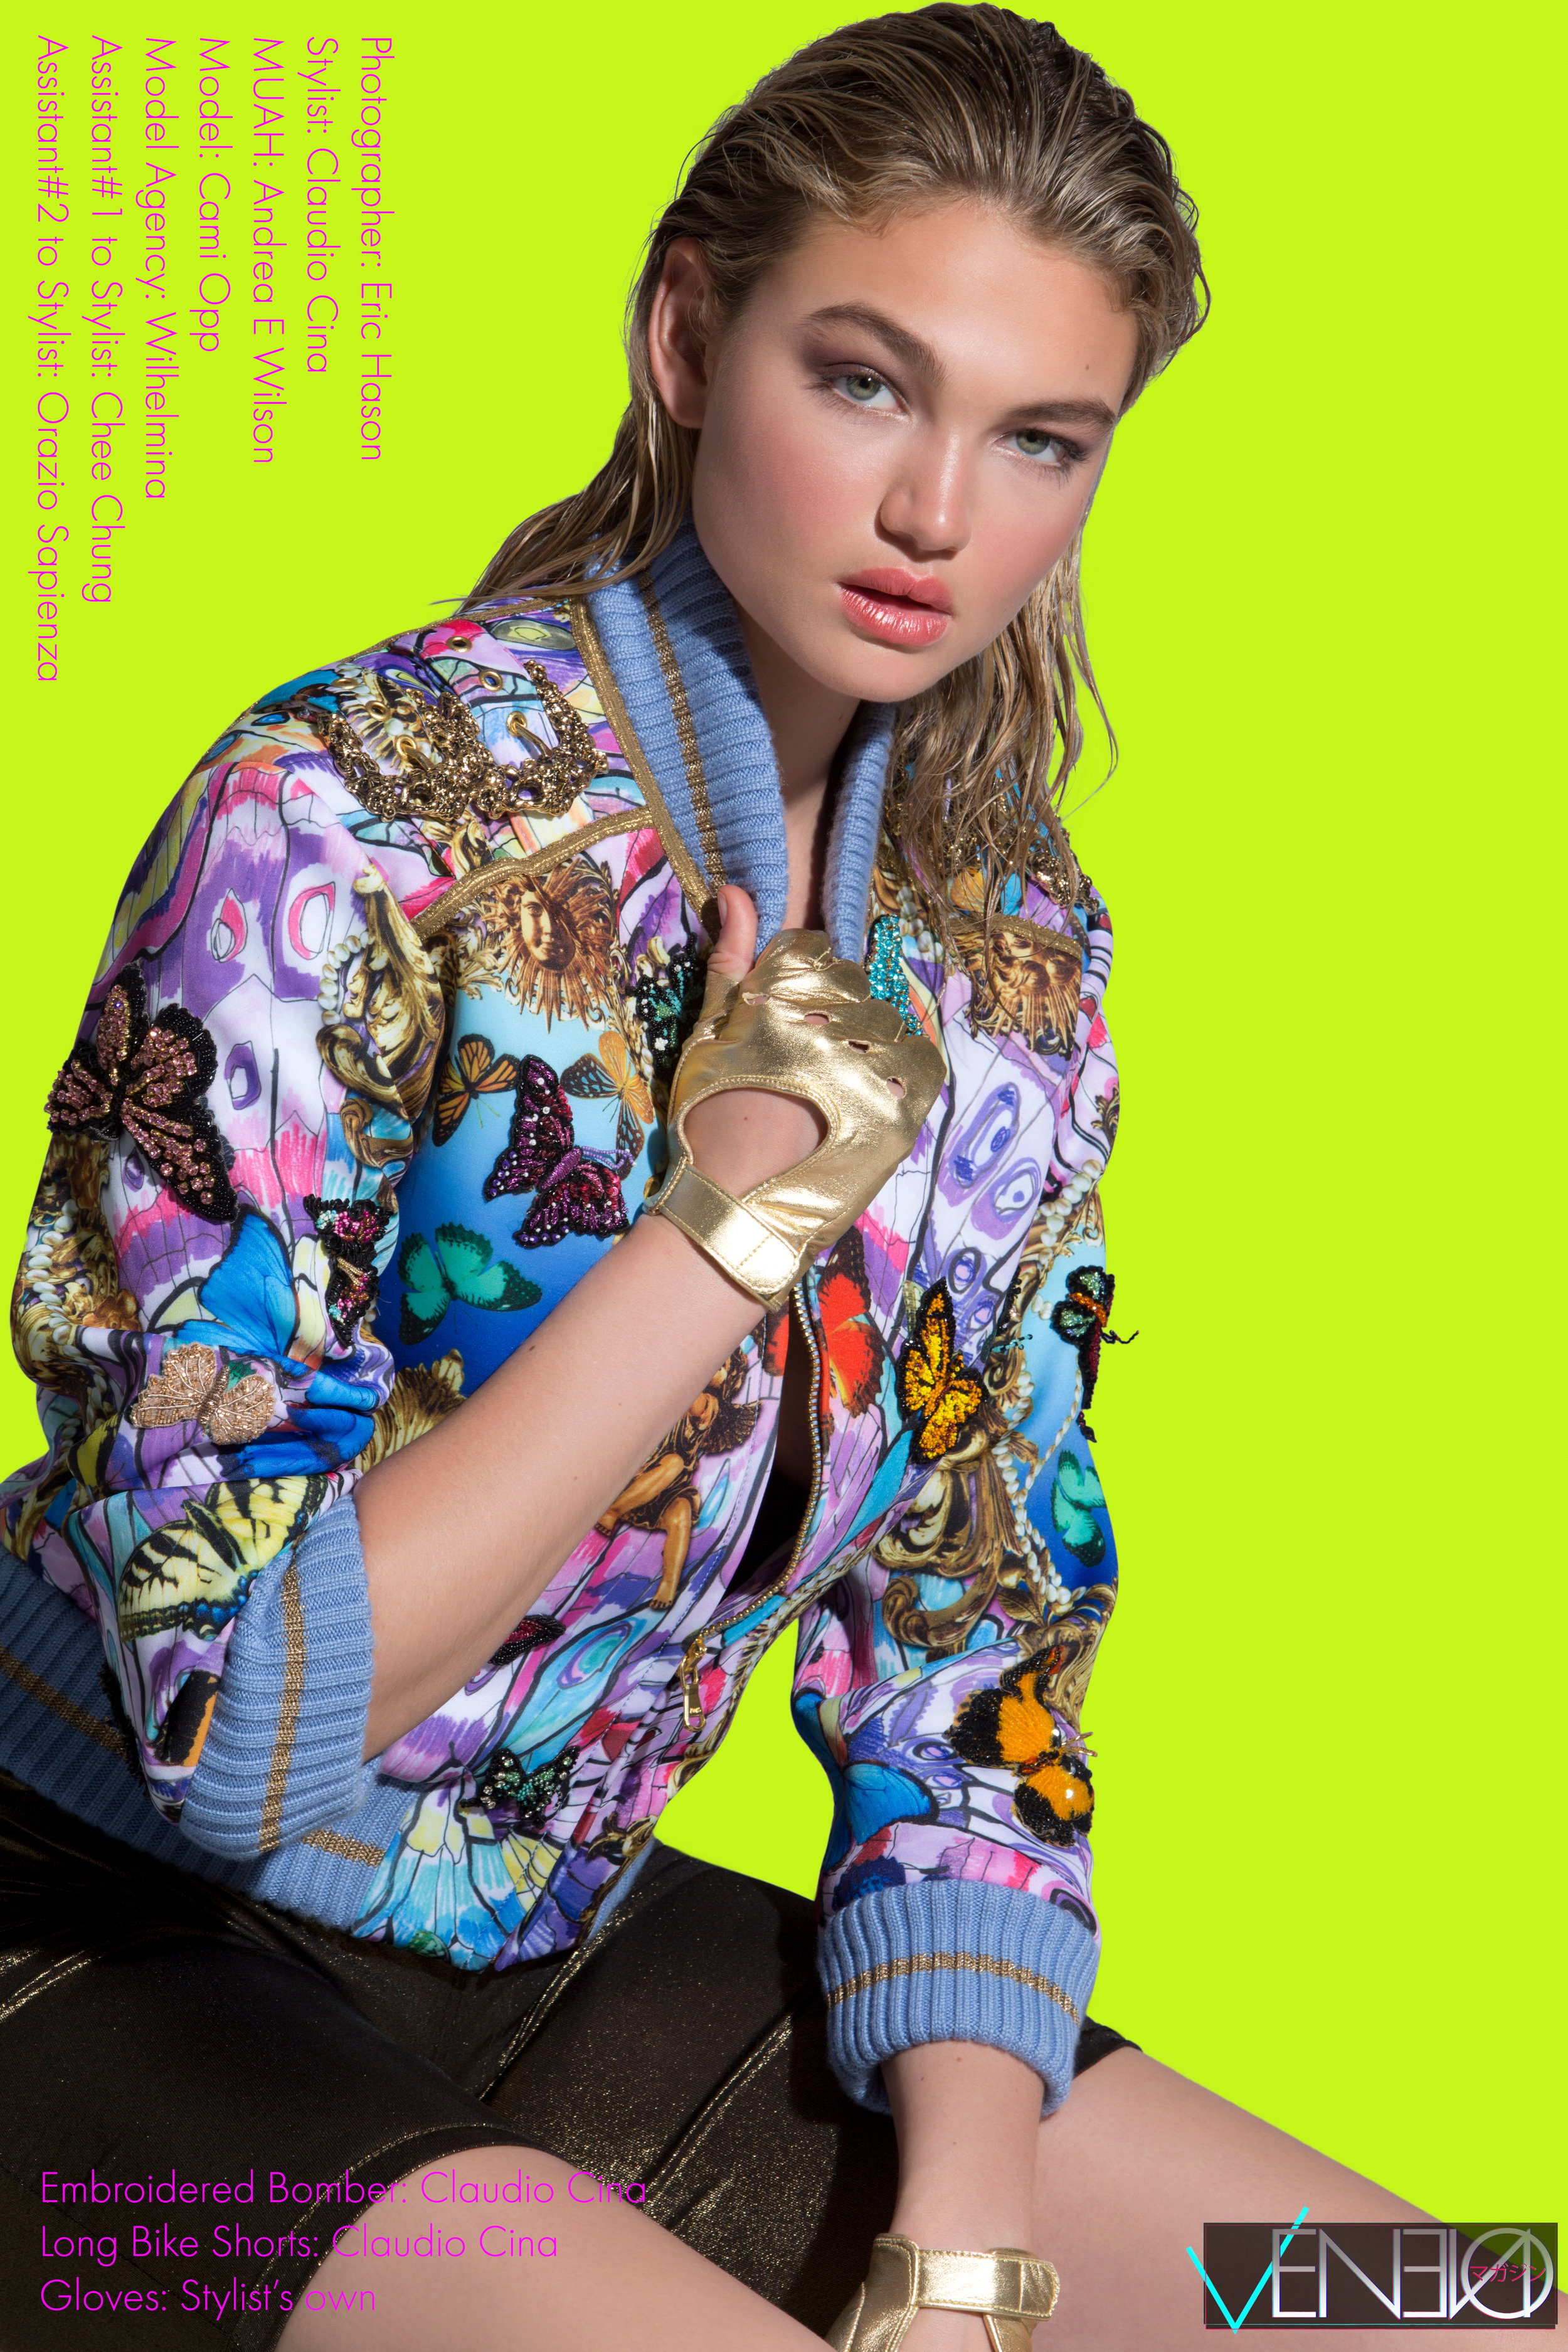 Embroidered Bomber – Claudio Cina Long Bike Shorts – Claudio Cina Gloves – Stylist's own